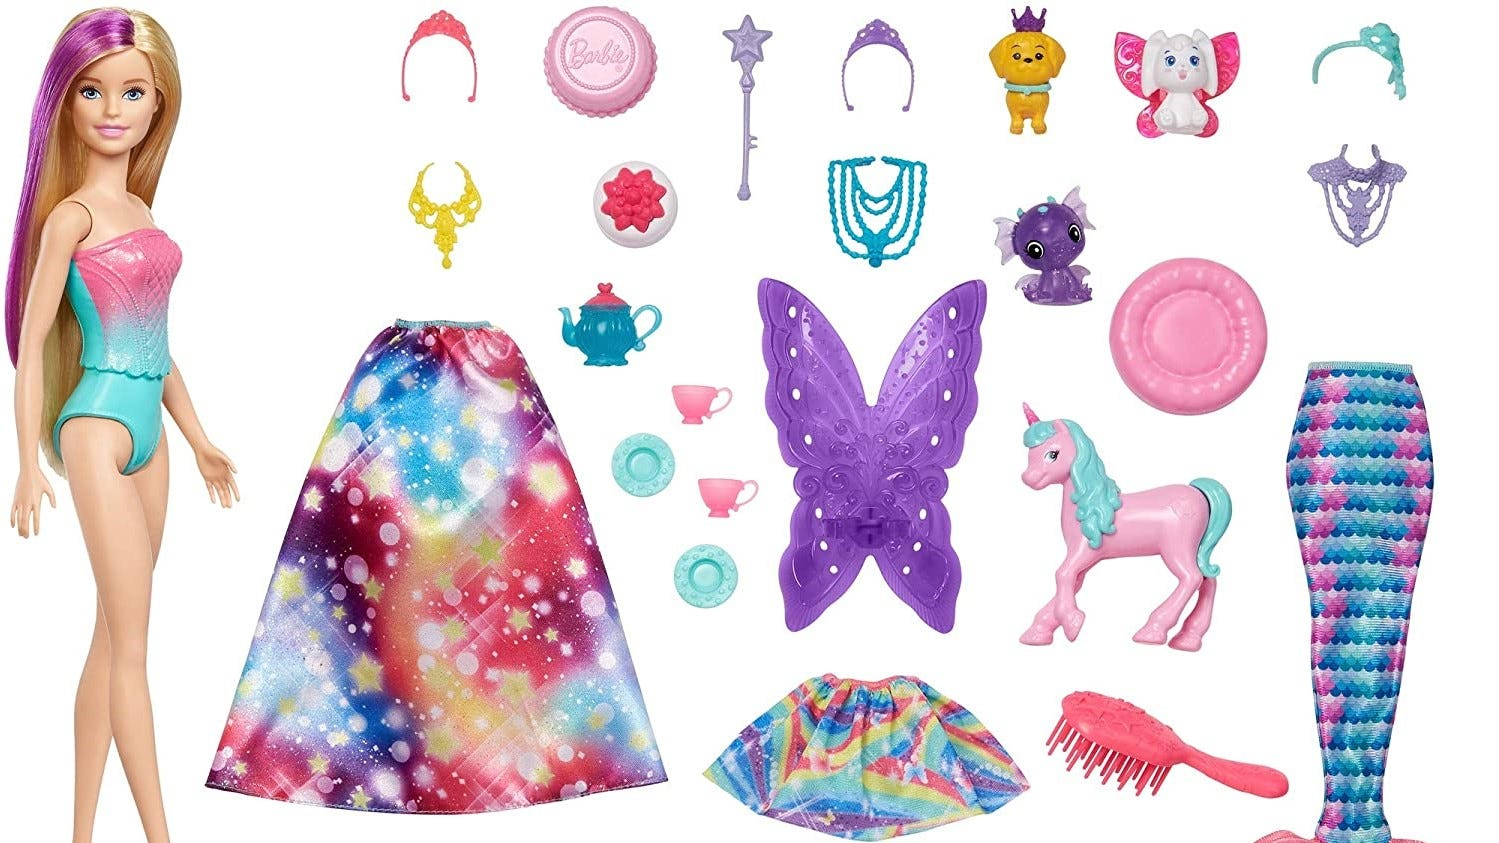 A Barbie doll and all the accessories that come in the Dreamtopia Advent Calendar.